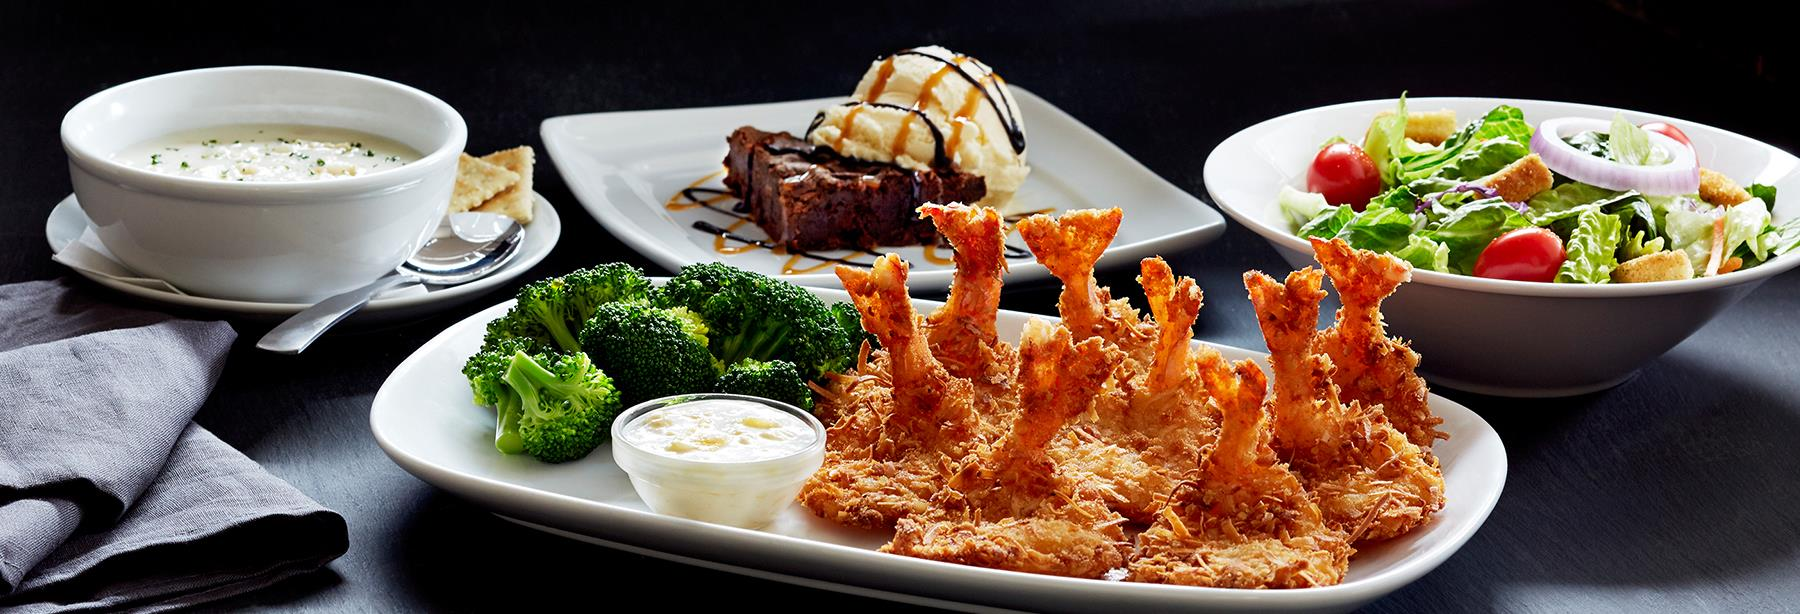 $15 Feast | Red Lobster Seafood Restaurants